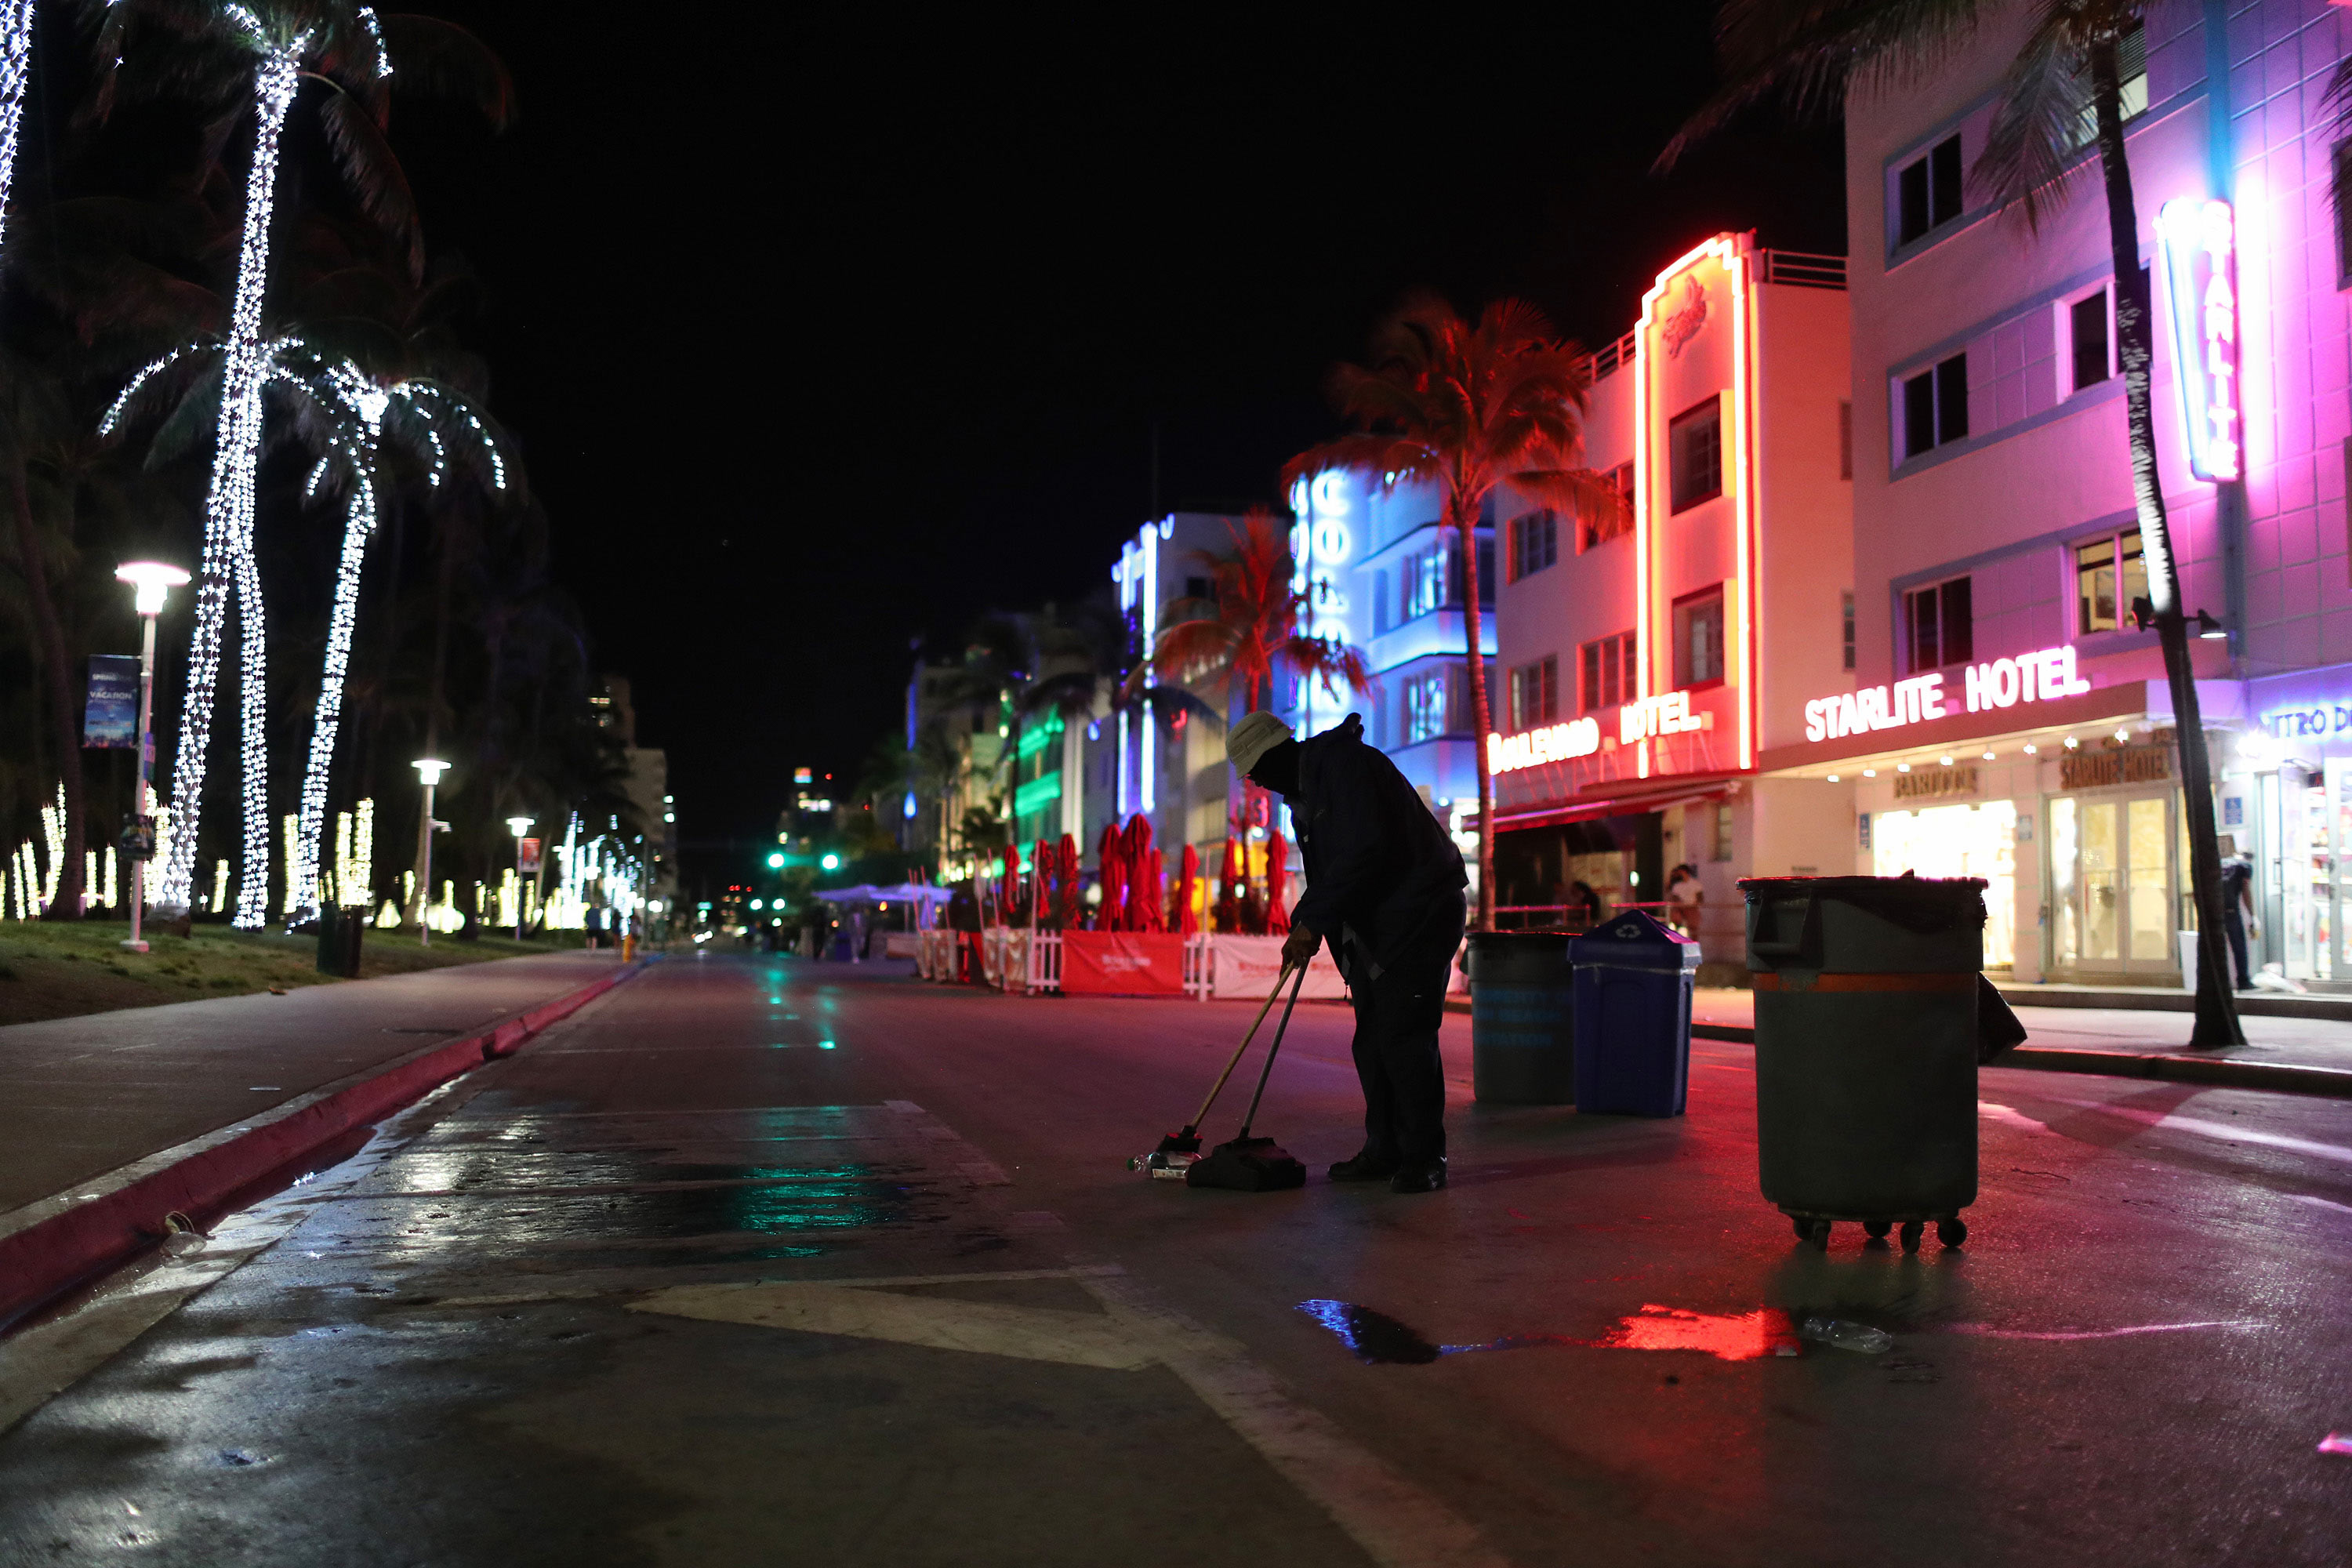 A City employee cleans up on Ocean Drive after people left due to an 8 p.m. curfew on March 21 in Miami Beach, Florida.